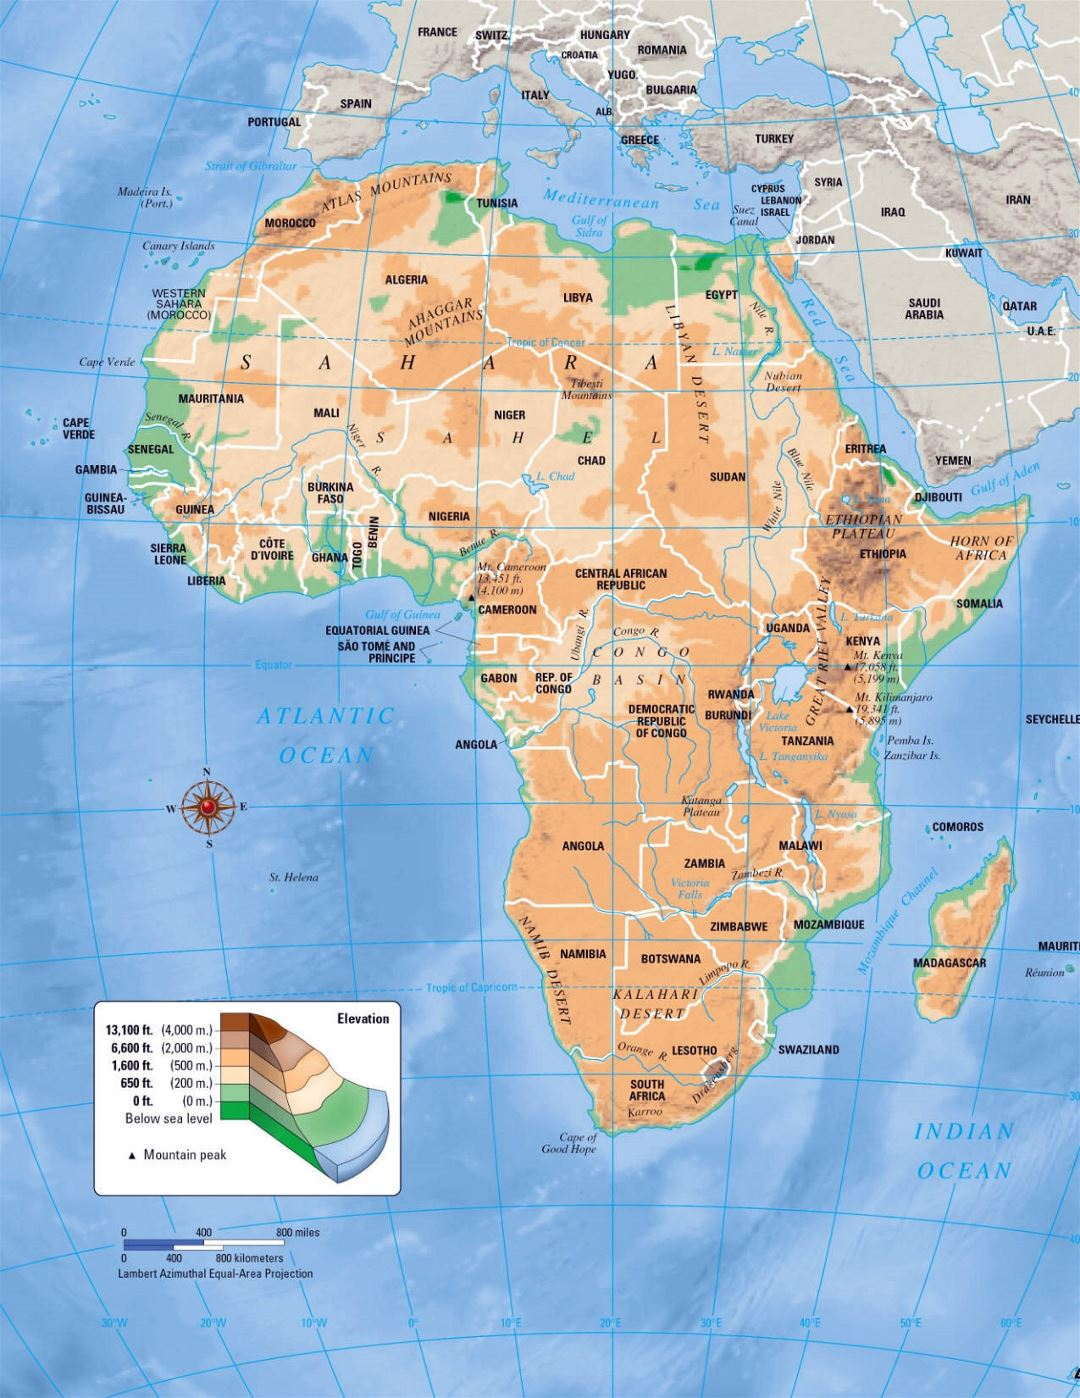 Large elevation map of Africa